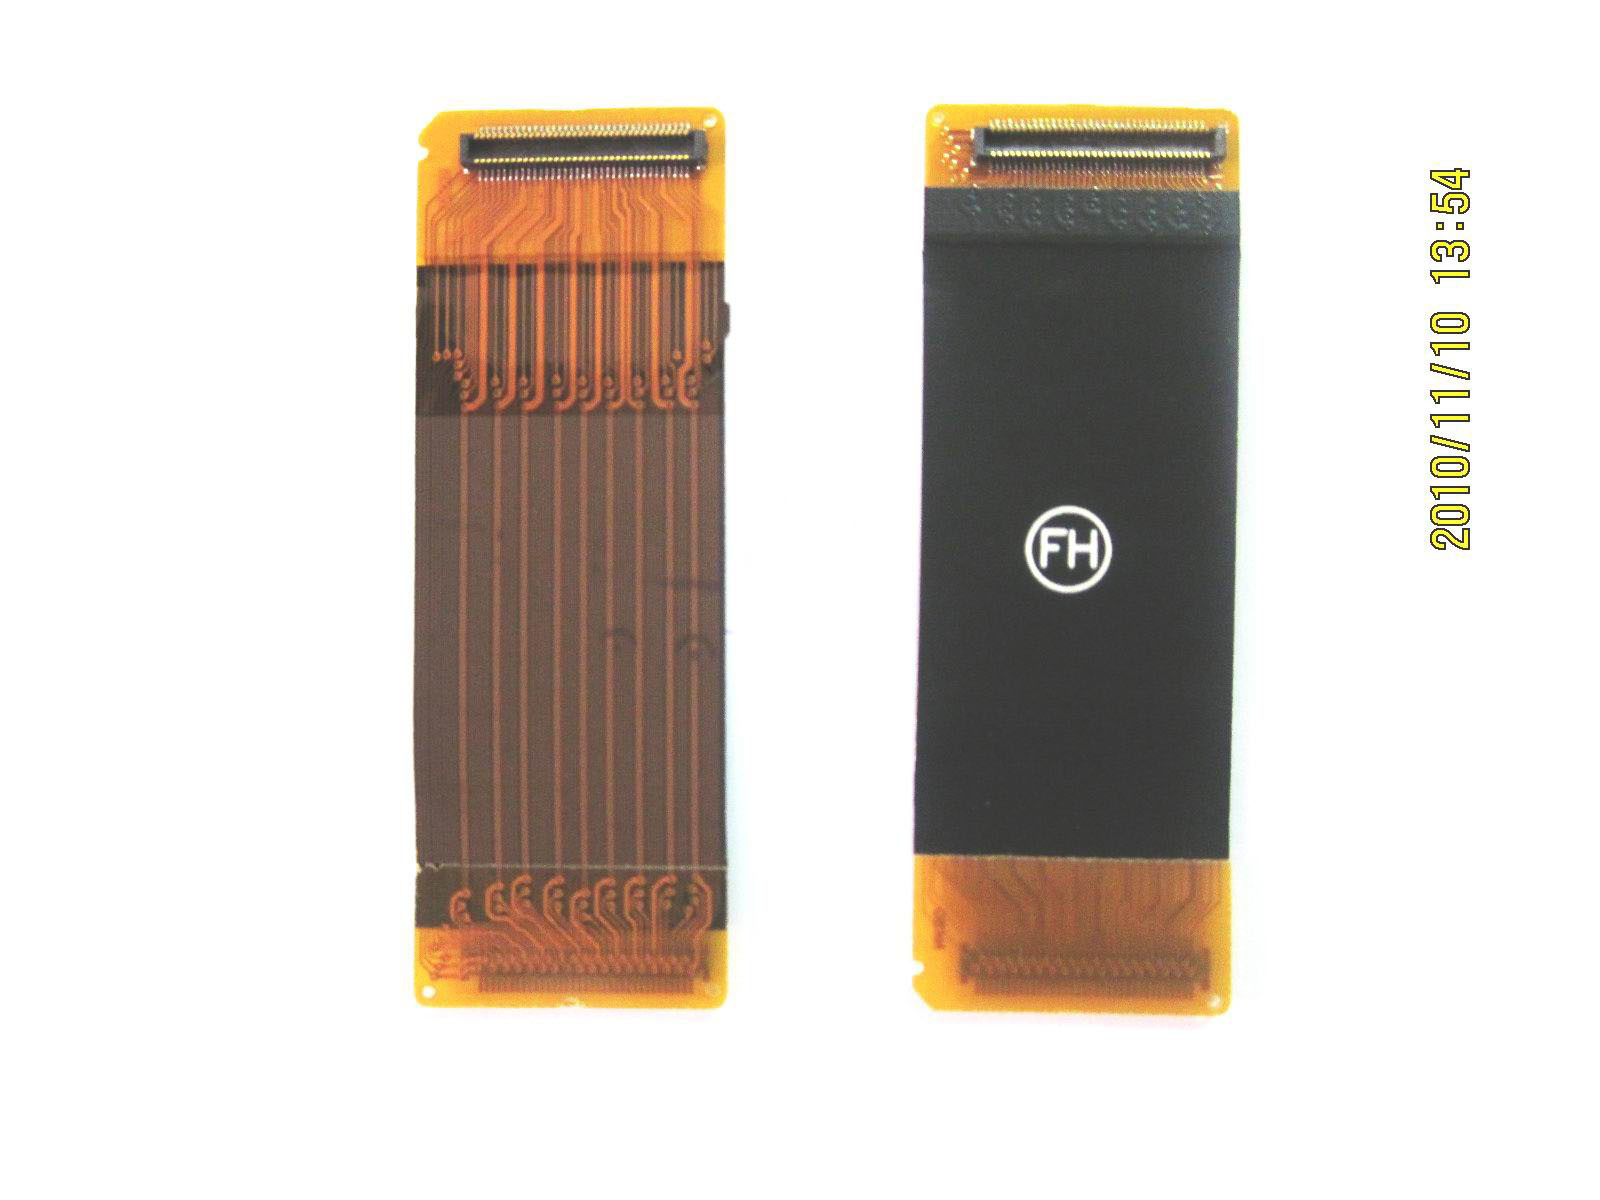 Mobile Phone Flex Cable : China mobile phone flex cable for nokia n